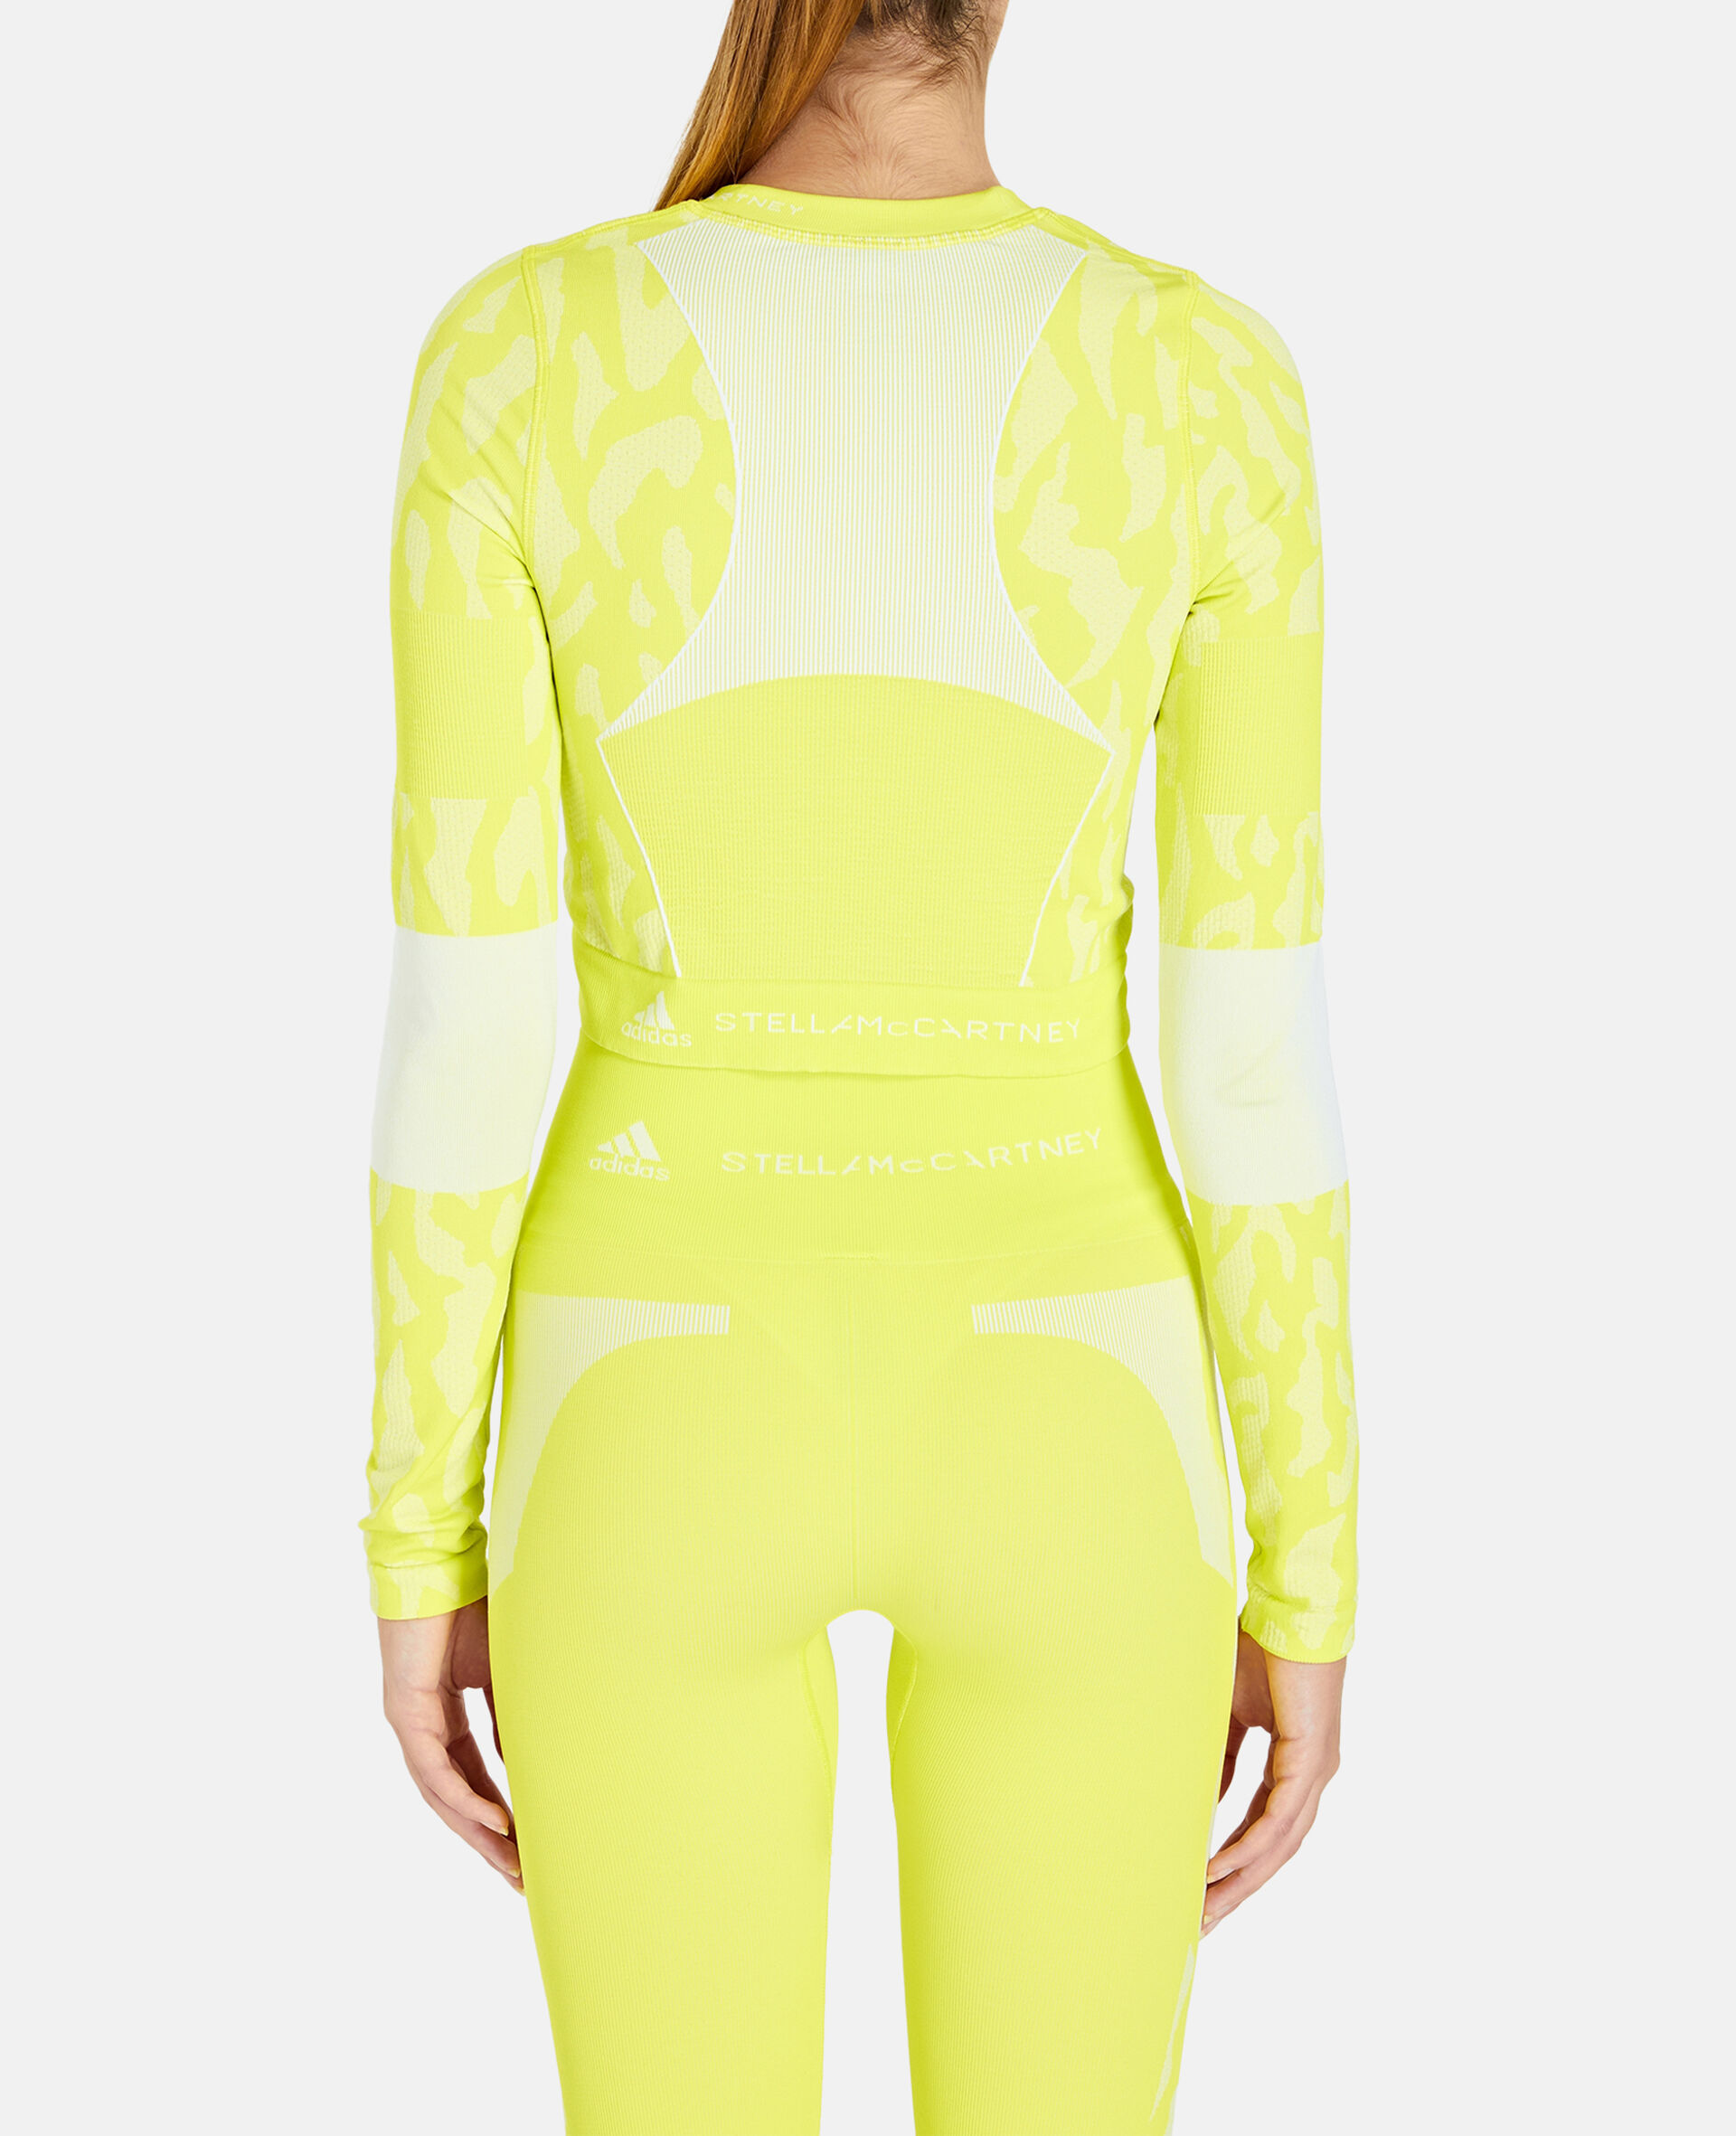 TruePurpose Seamless Training Crop Top -Yellow-large image number 2